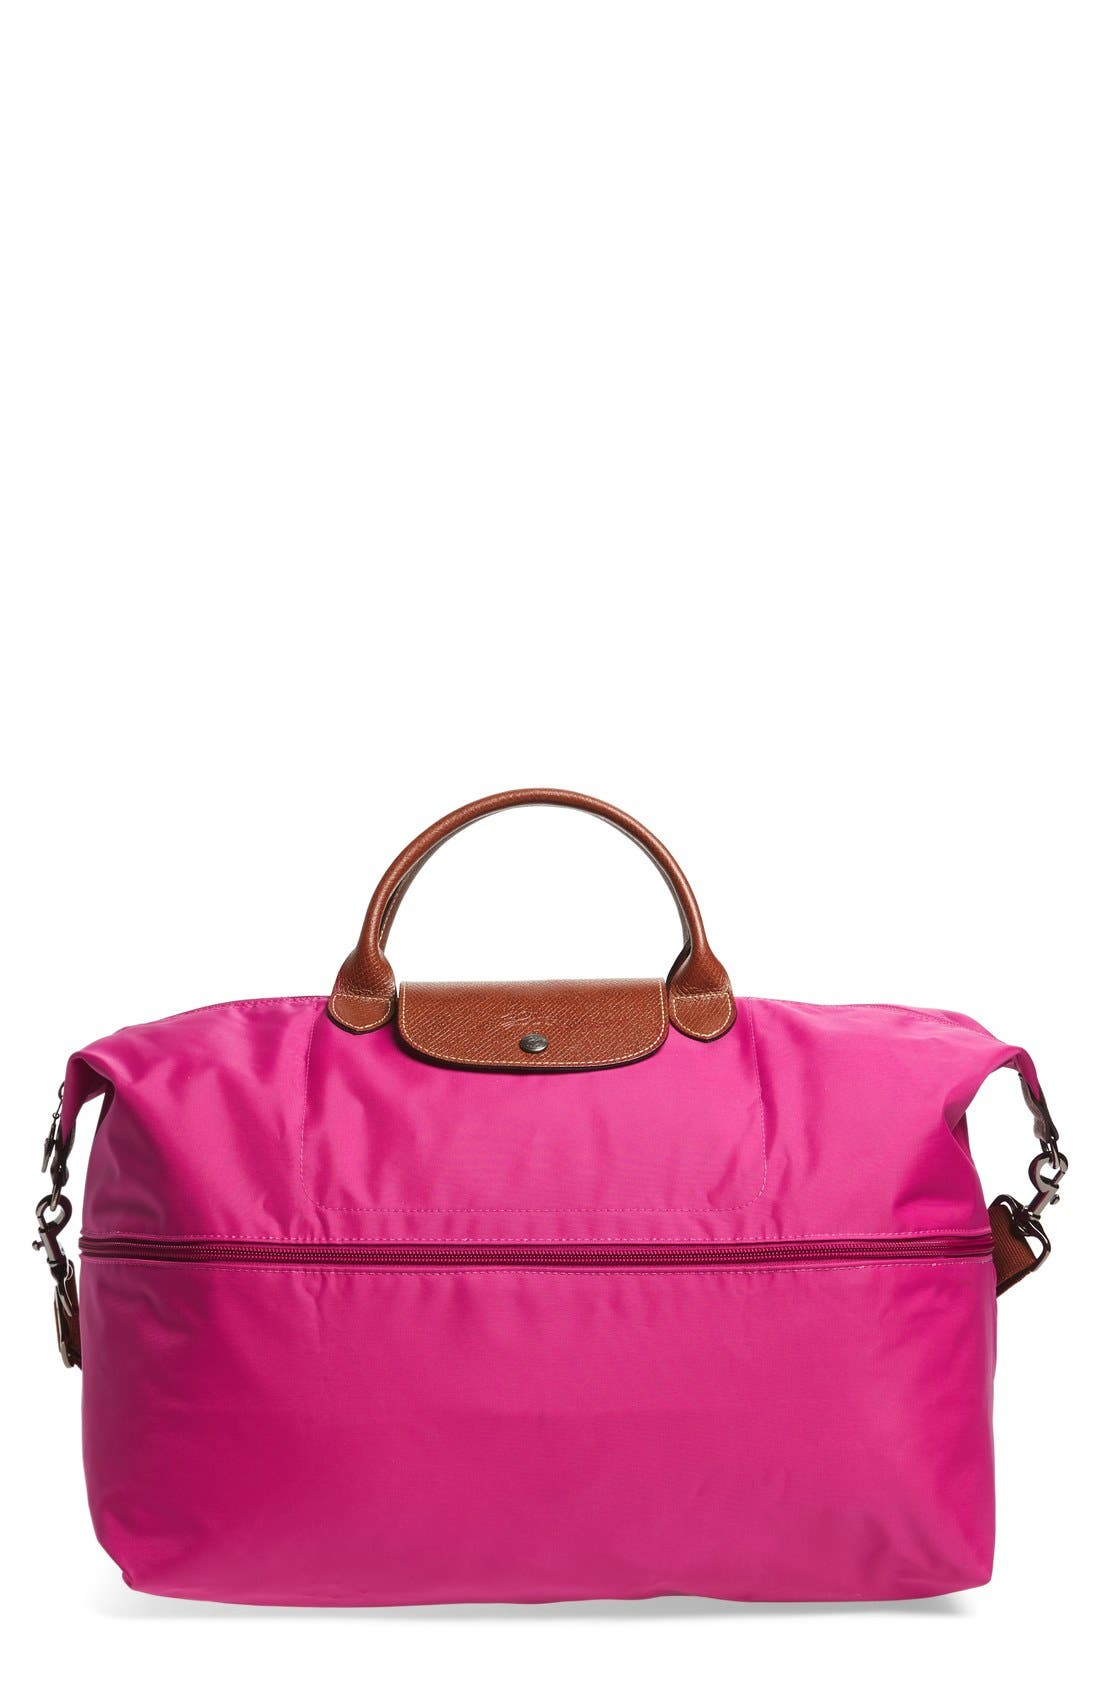 Alternate Image 1 Selected - Longchamp 'Le Pliage' Expandable Travel Bag (21 Inch)